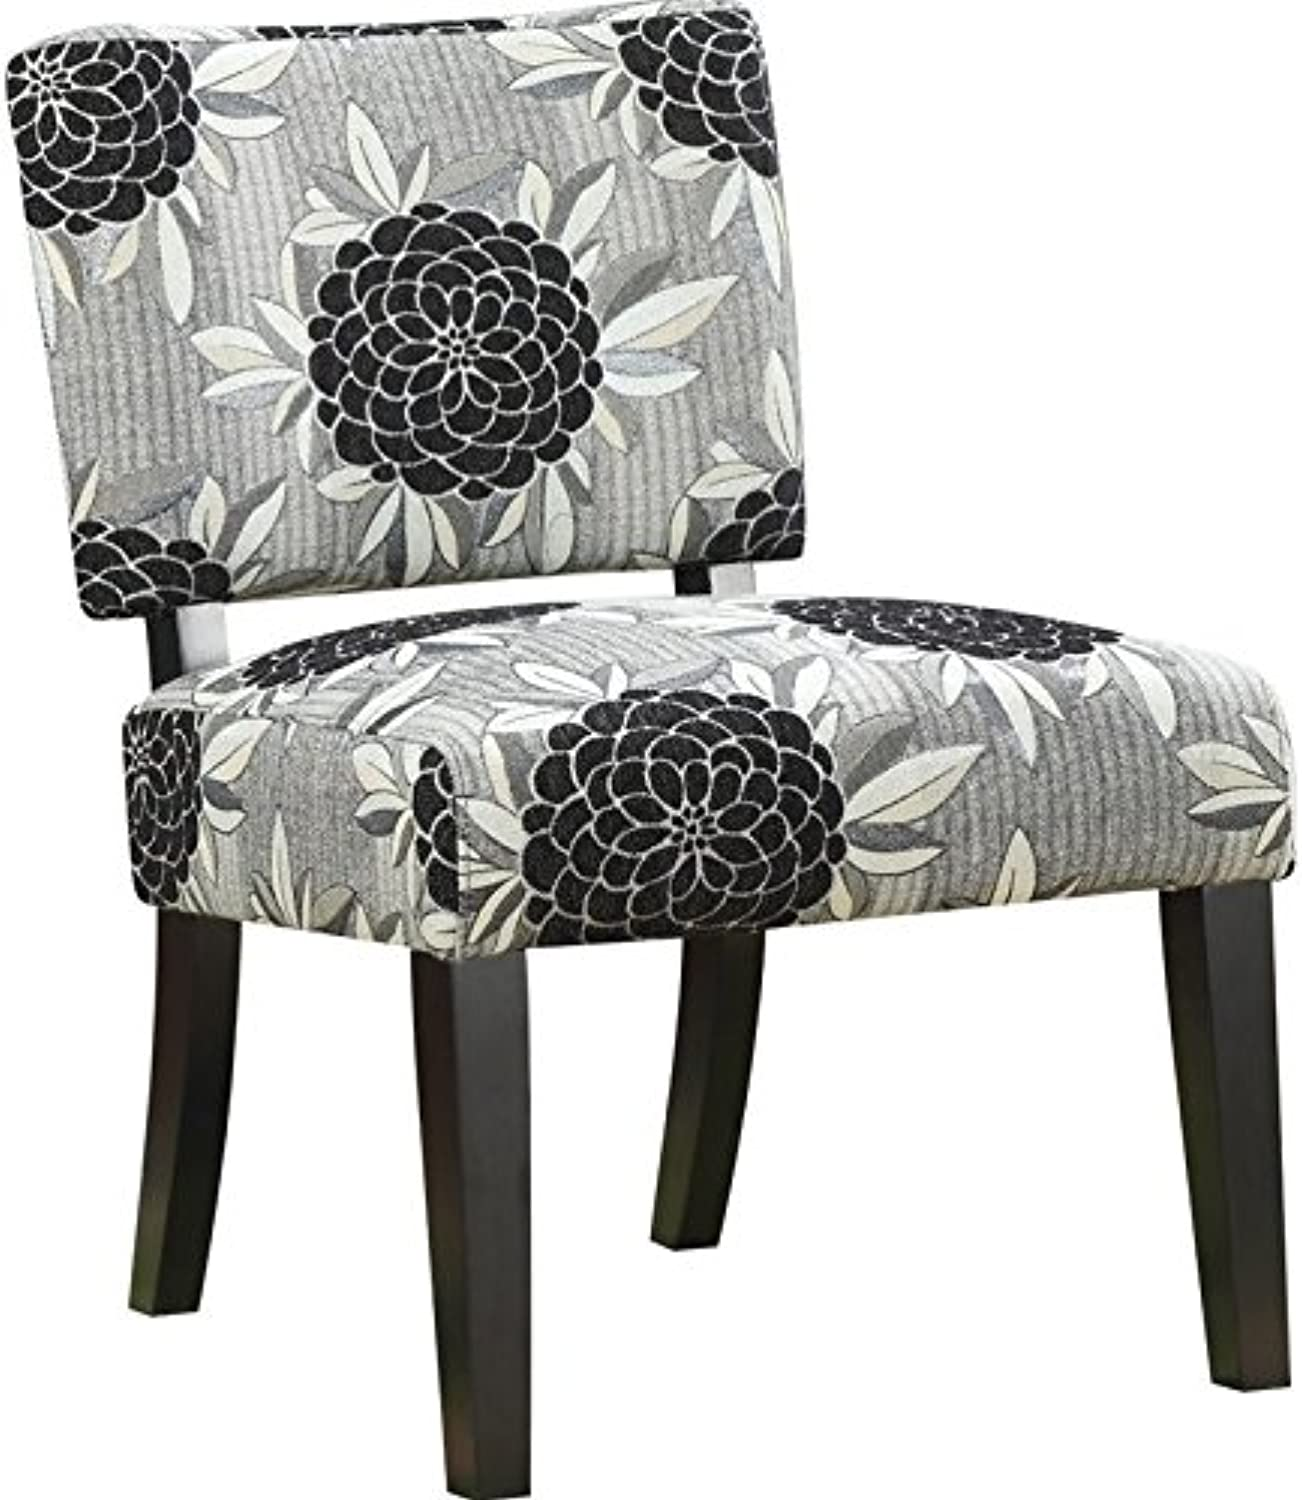 Bowery Hill Chair in Big Flower Motif